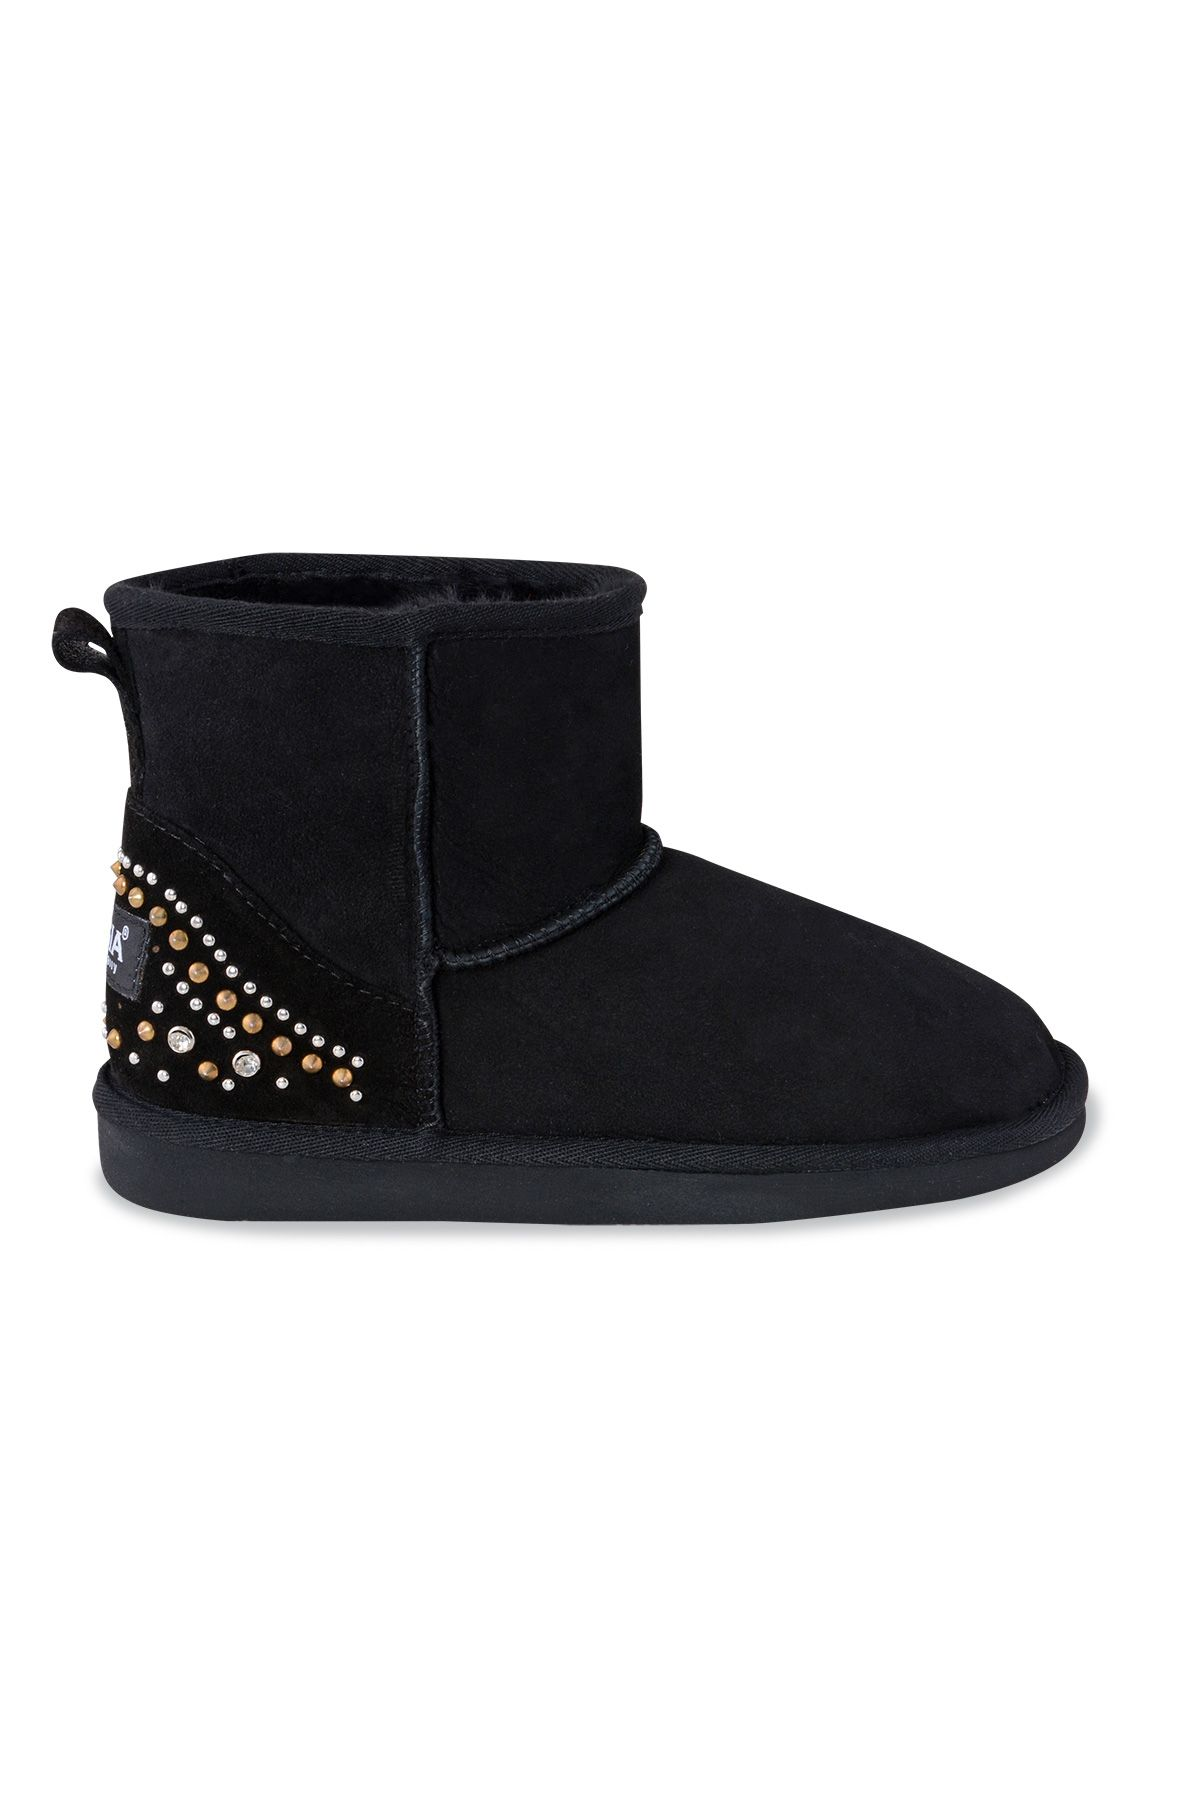 Pegia Genuine Suede & Shearling Short Women's Boots With Stones 191075 Black